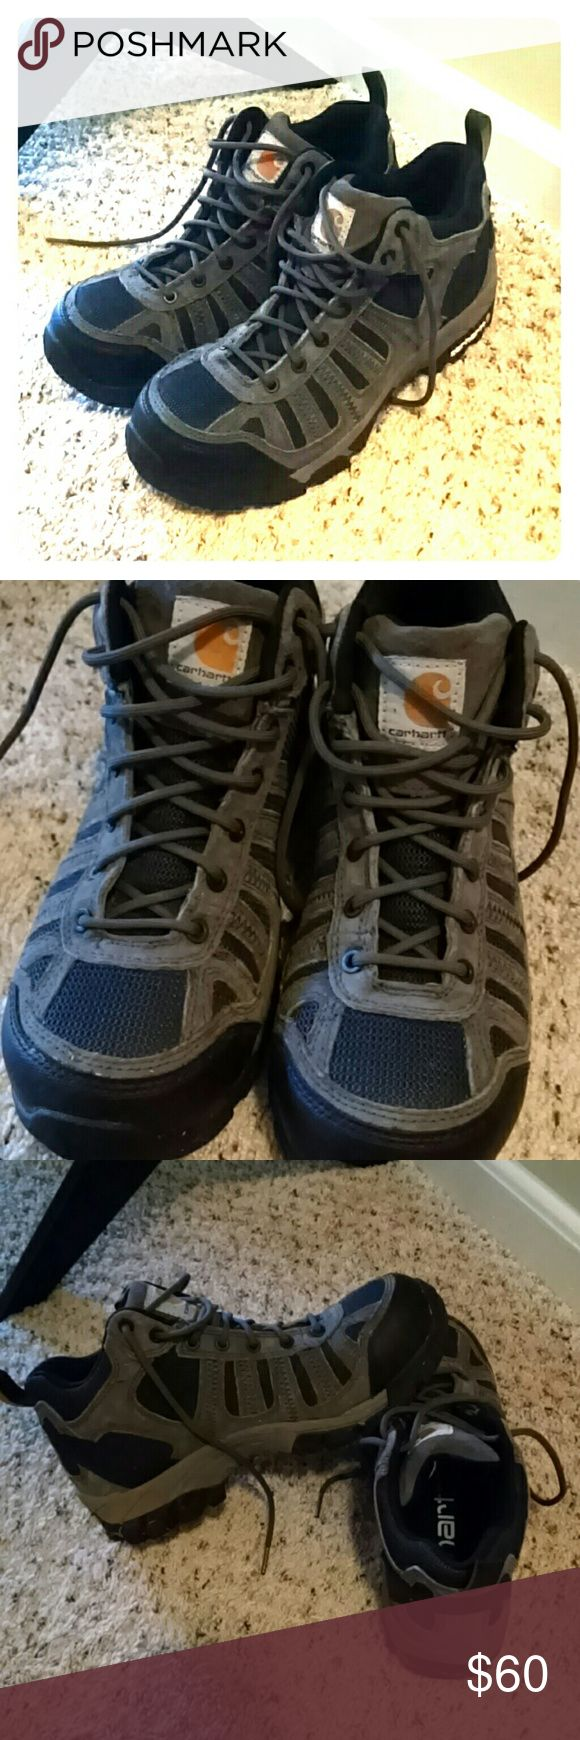 Carhartt Work Boots Composite toe work boots with ankle support, from a trusted brand. Worn only a couple times. Soles a little dirty but otherwise, like new! In excellent condition and I've already lowered price considerably so not taking any lower!! Carhartt Shoes Lace Up Boots